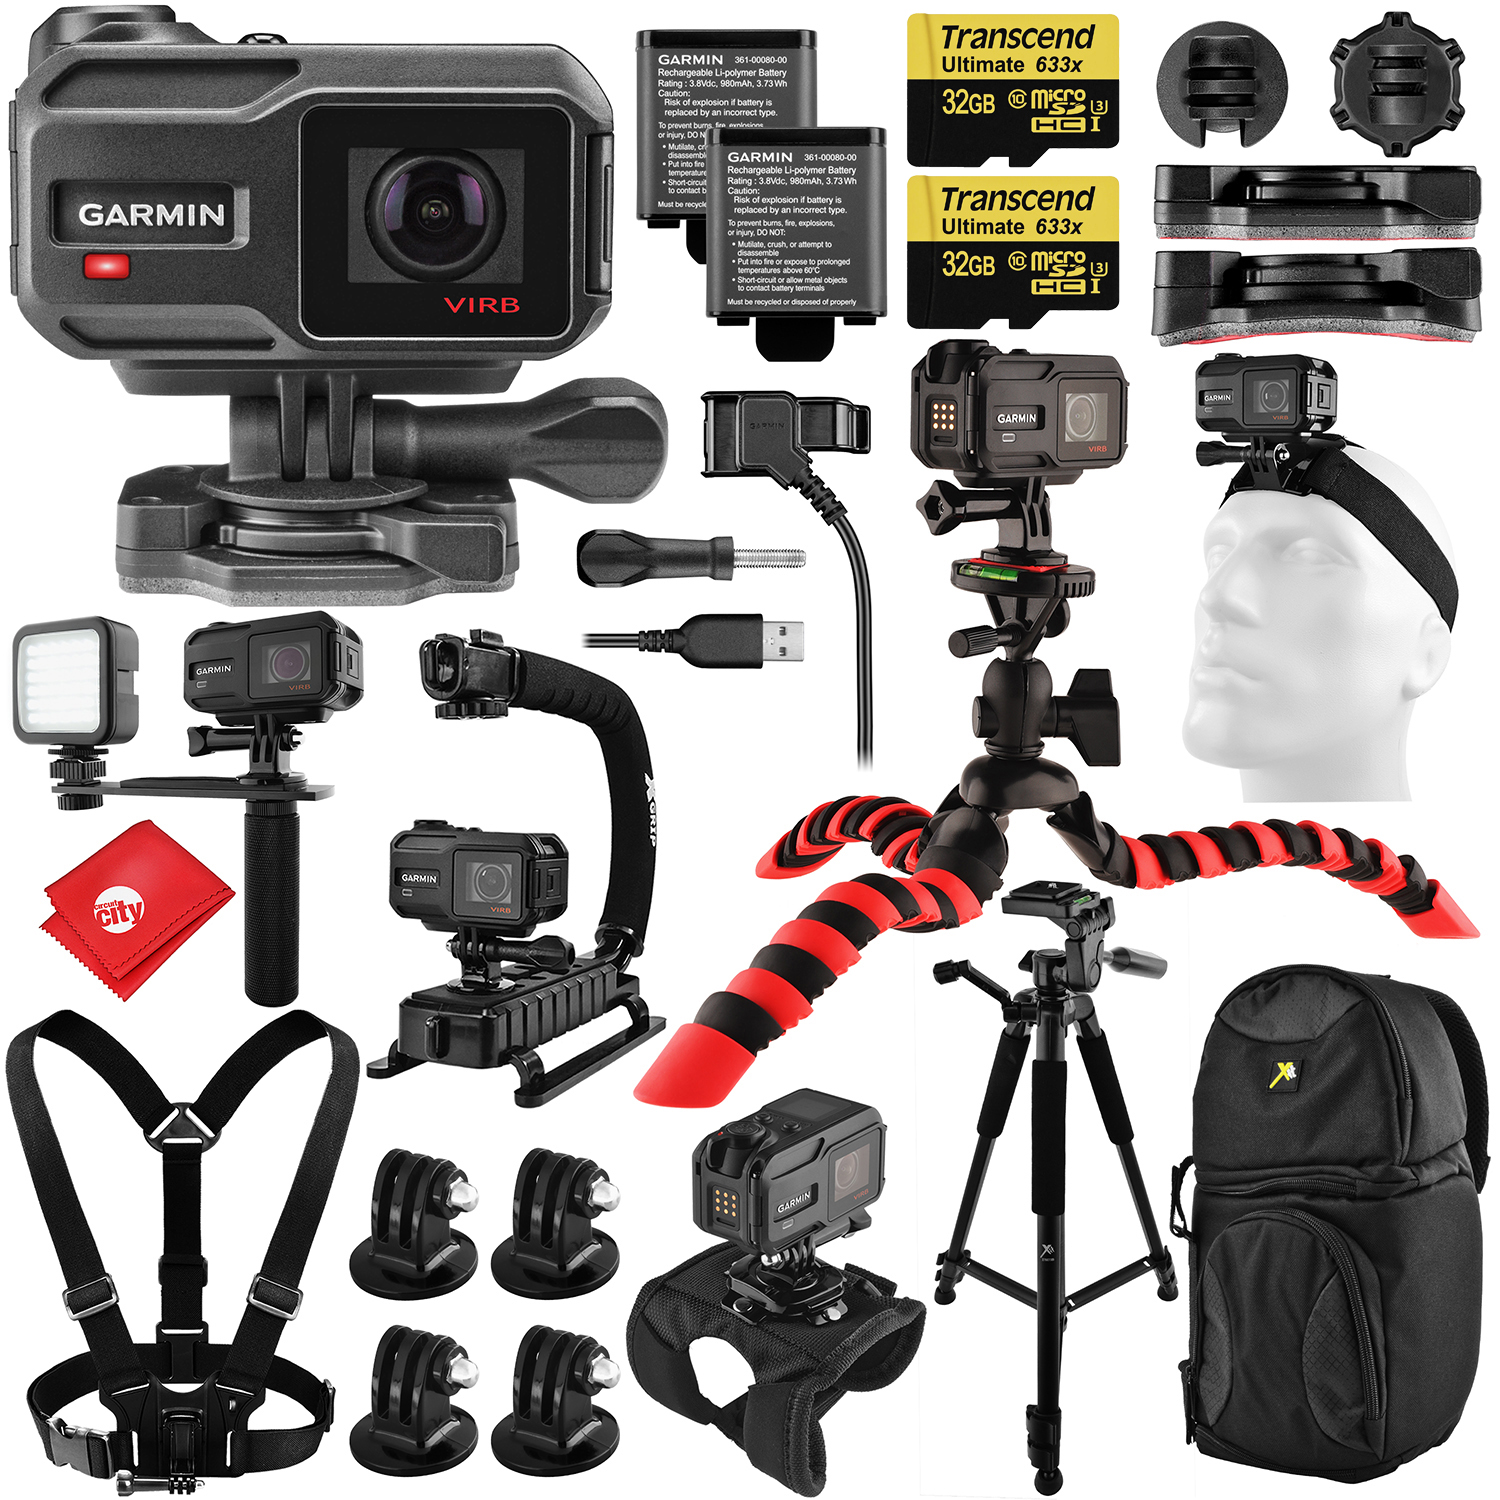 "Garmin Virb X Skate Kit w  X-Grip; LED Hand Grip Rig; Head, Wrist, Chest Mounts; 60"" 3-Way Pan Head, 12"" Flex... by Garmin"